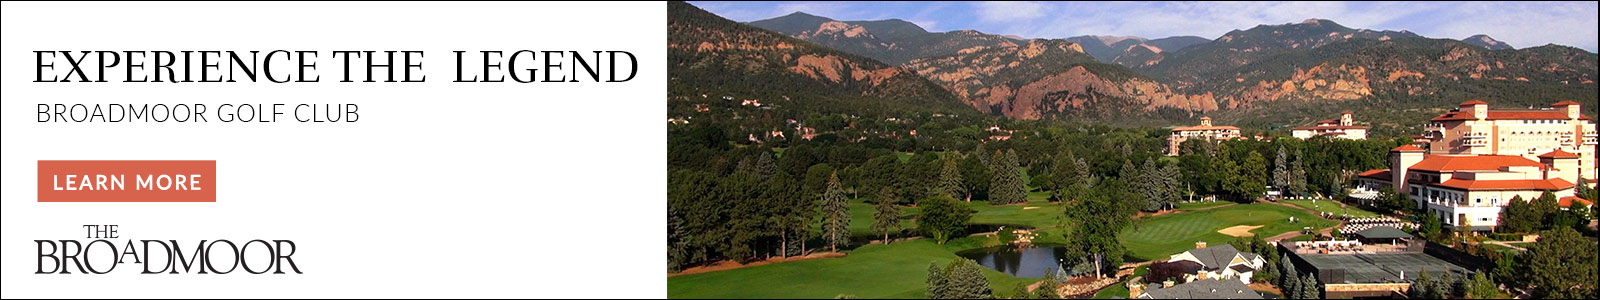 The Broadmoor Golf Club - Experience the Legend